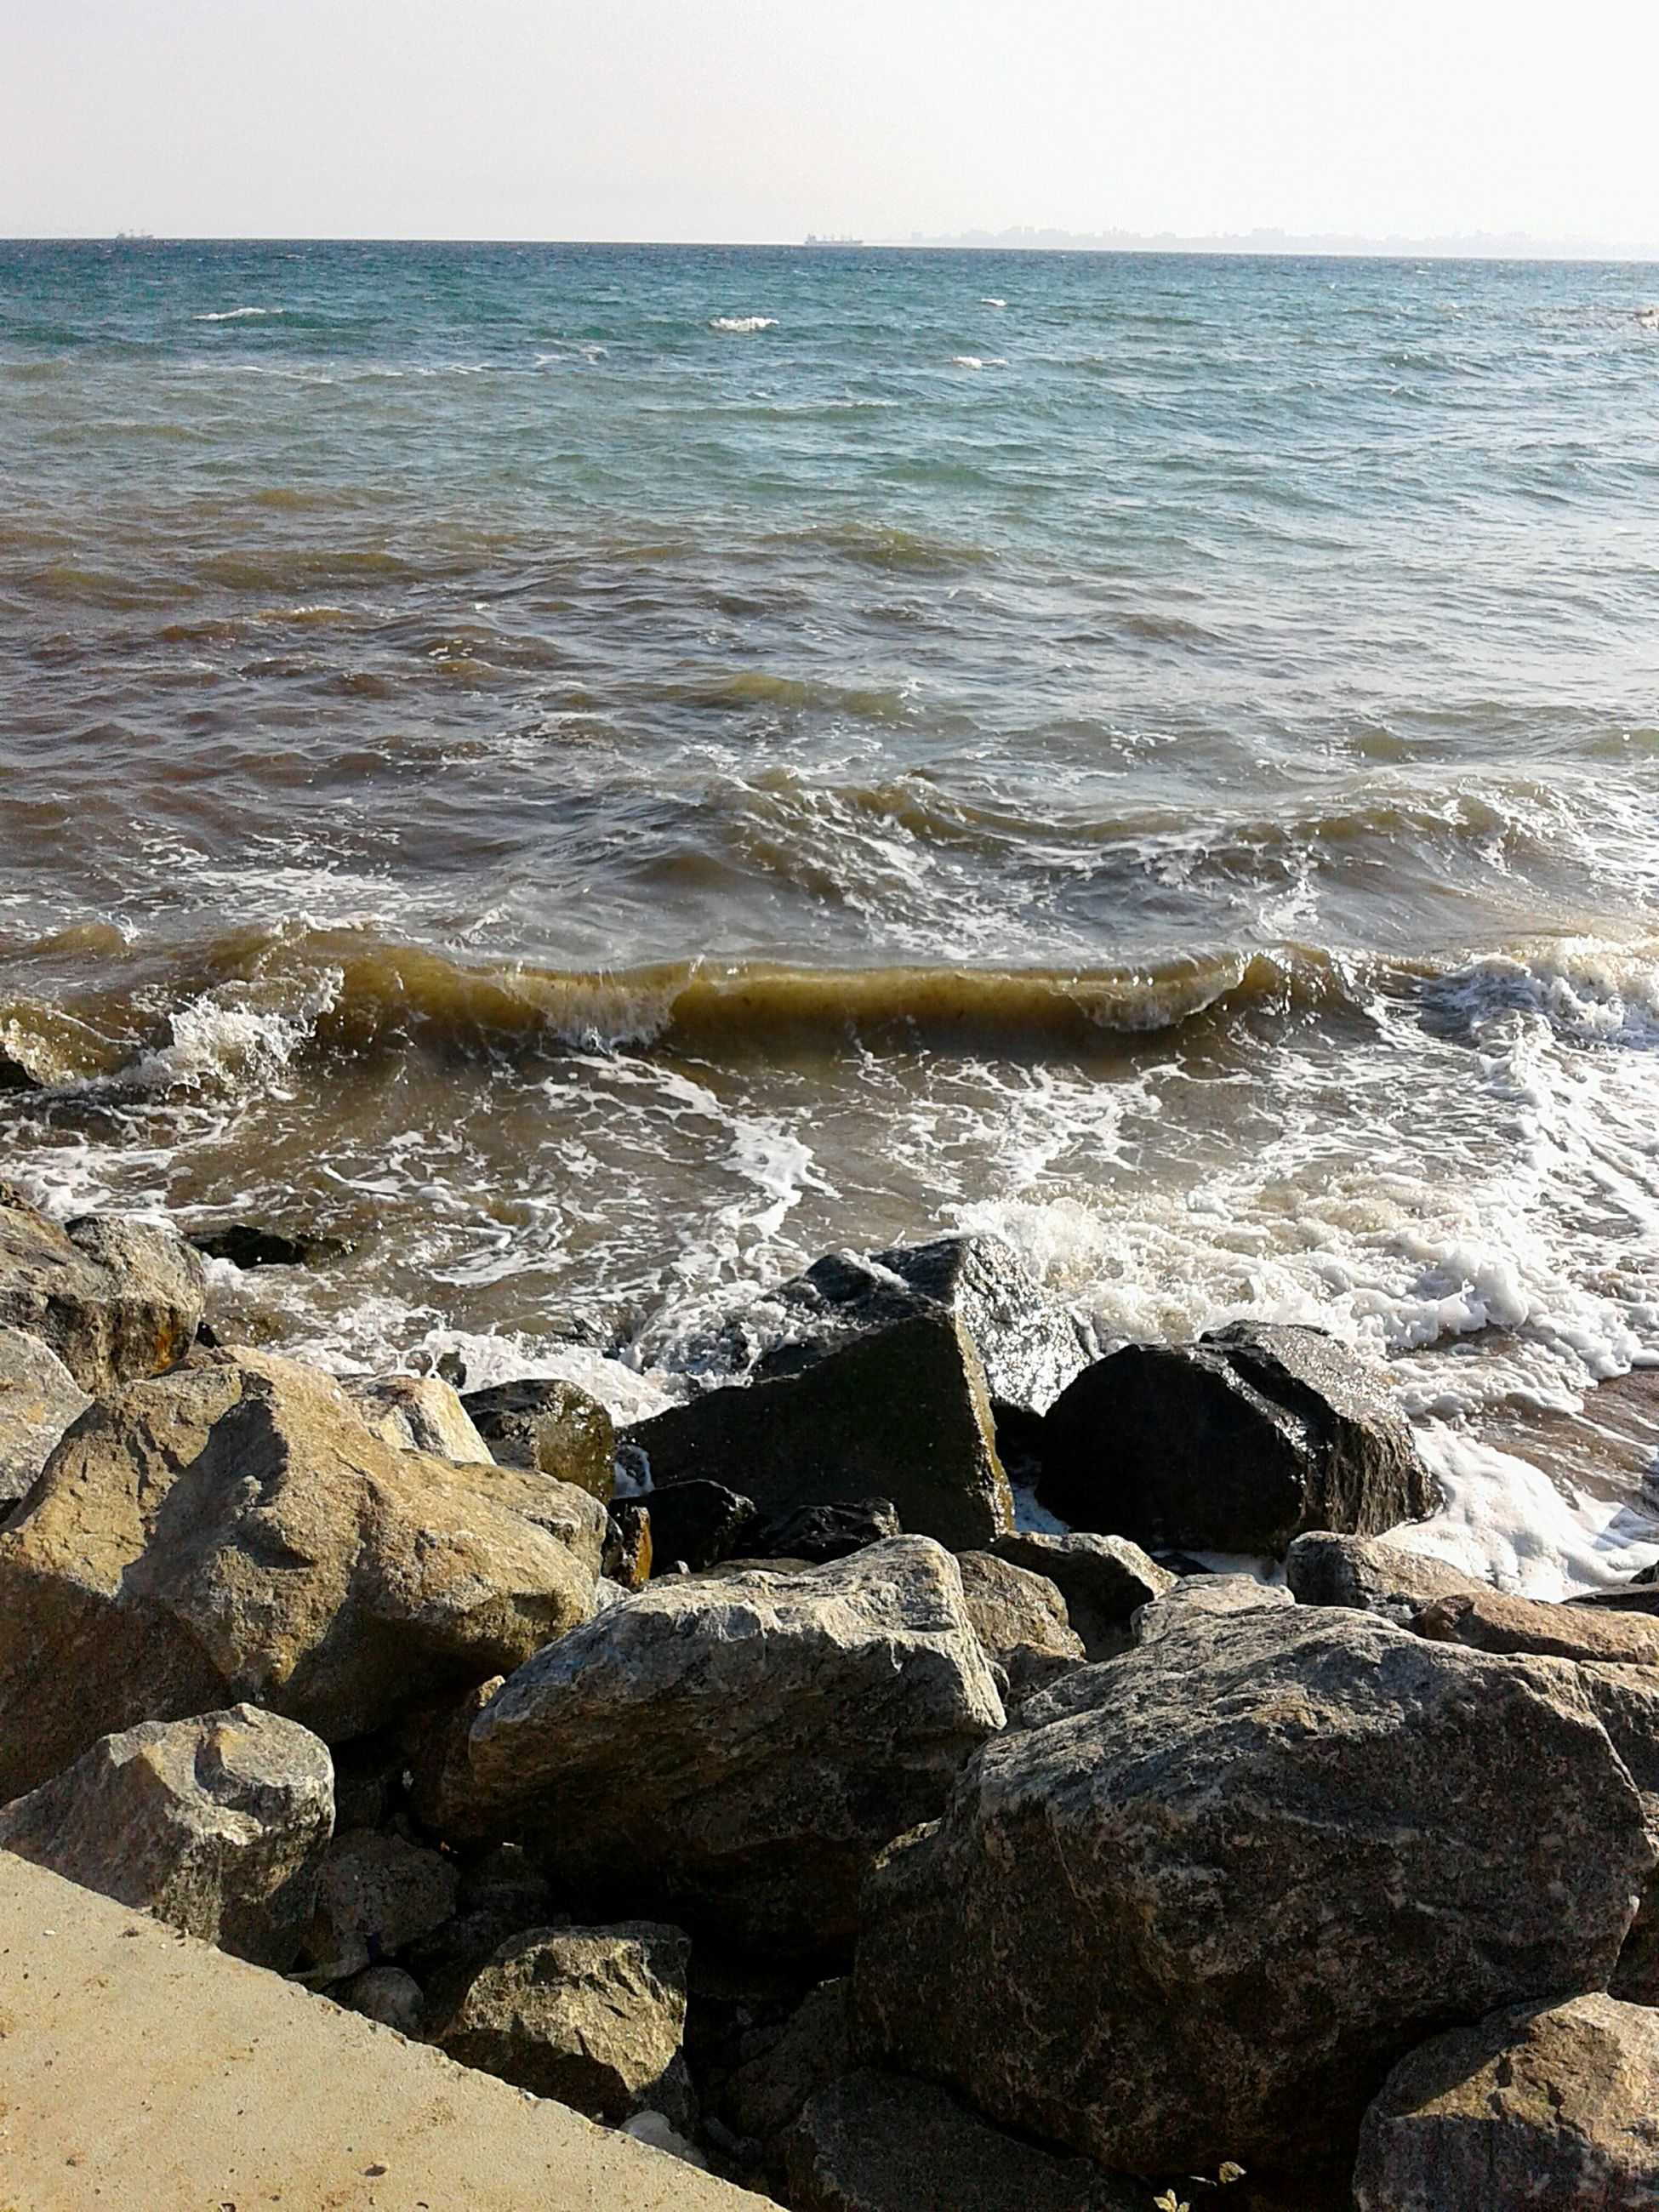 sea, water, beach, nature, horizon over water, sand, sky, scenics, beauty in nature, outdoors, no people, day, tranquility, wave, close-up